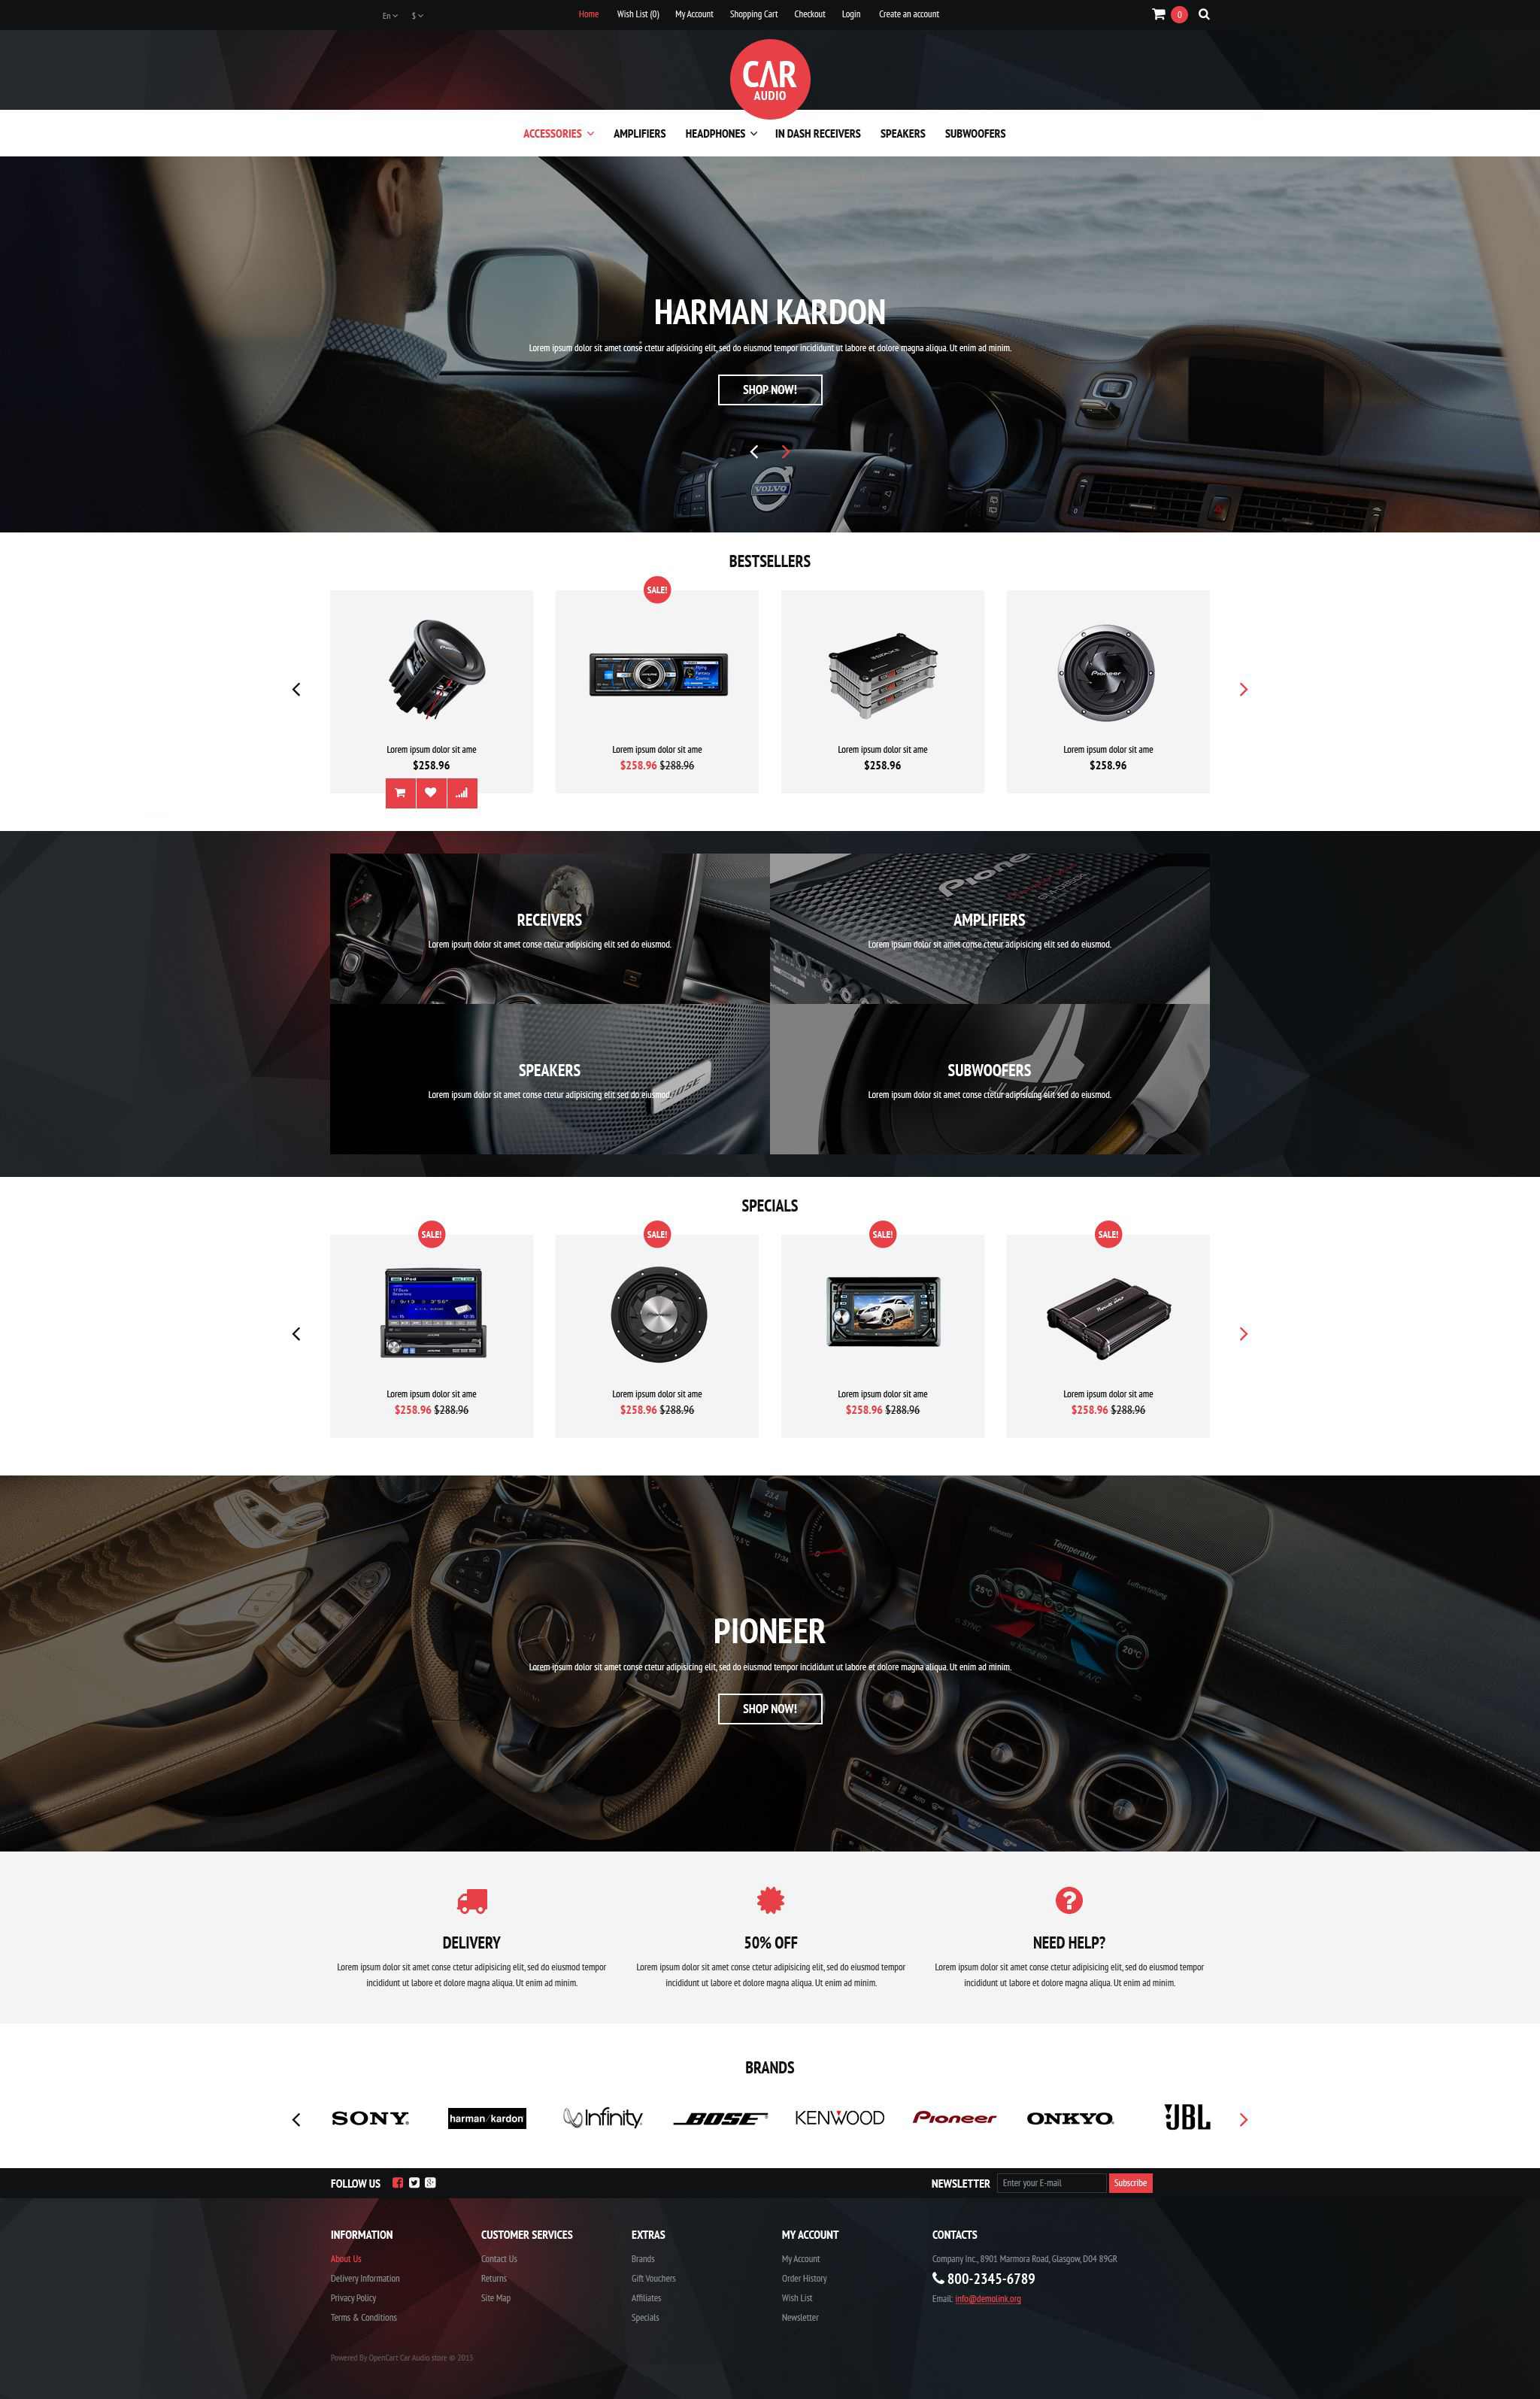 The Car Audio Online Store OpenCart Design 53031, one of the best OpenCart templates of its kind (cars, most popular), also known as car audio online store OpenCart template, shop OpenCart template, shopping cart OpenCart template, virtuemart OpenCart template, products OpenCart template, music OpenCart template, pioneer OpenCart template, player OpenCart template, cd OpenCart template, dvd-rom OpenCart template, sd OpenCart template, card OpenCart template, usb OpenCart template, dj OpenCart template, mp3 OpenCart template, sound OpenCart template, electronics and related with car audio online store, shop, shopping cart, virtuemart, products, music, pioneer, player, cd, dvd-rom, sd, card, usb, dj, mp3, sound, electronics, etc.